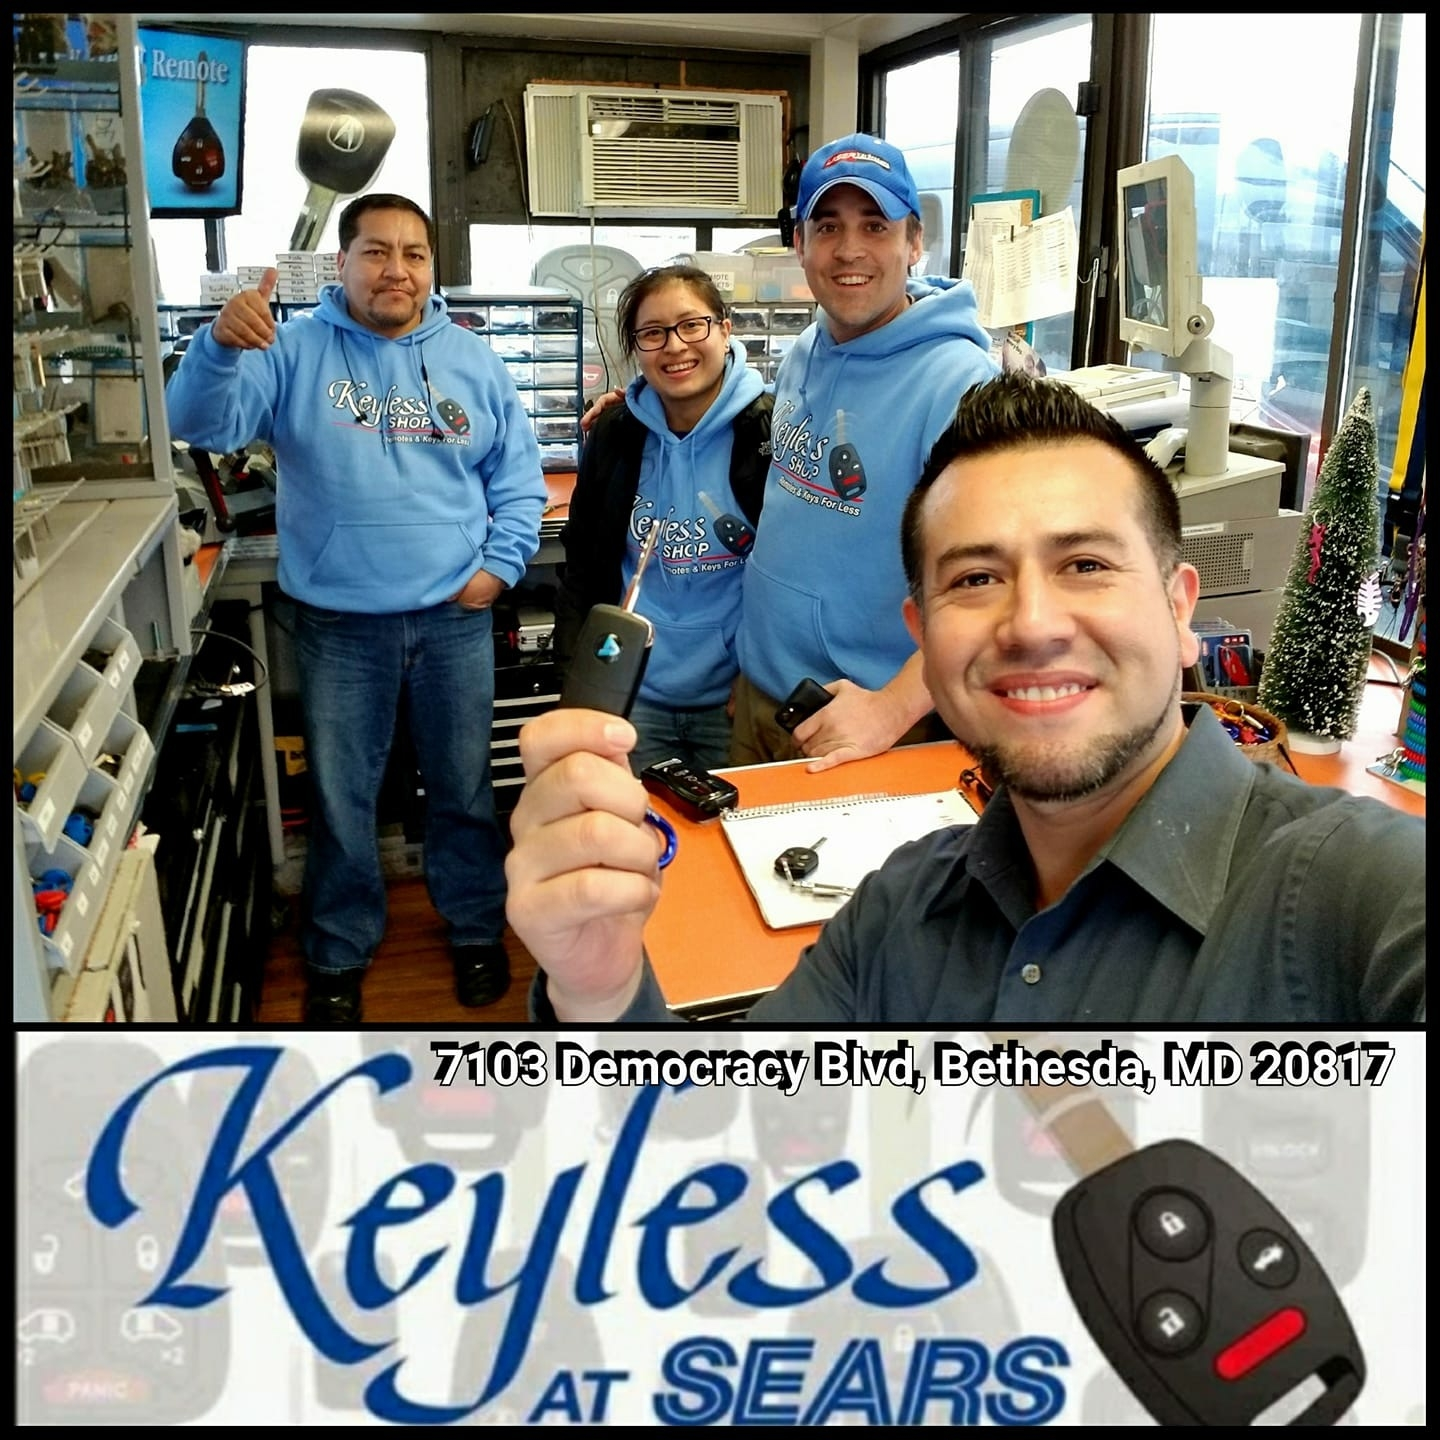 Keyless Shop Bethesda, MD. Check out all our locations page to find the nearest location to you.